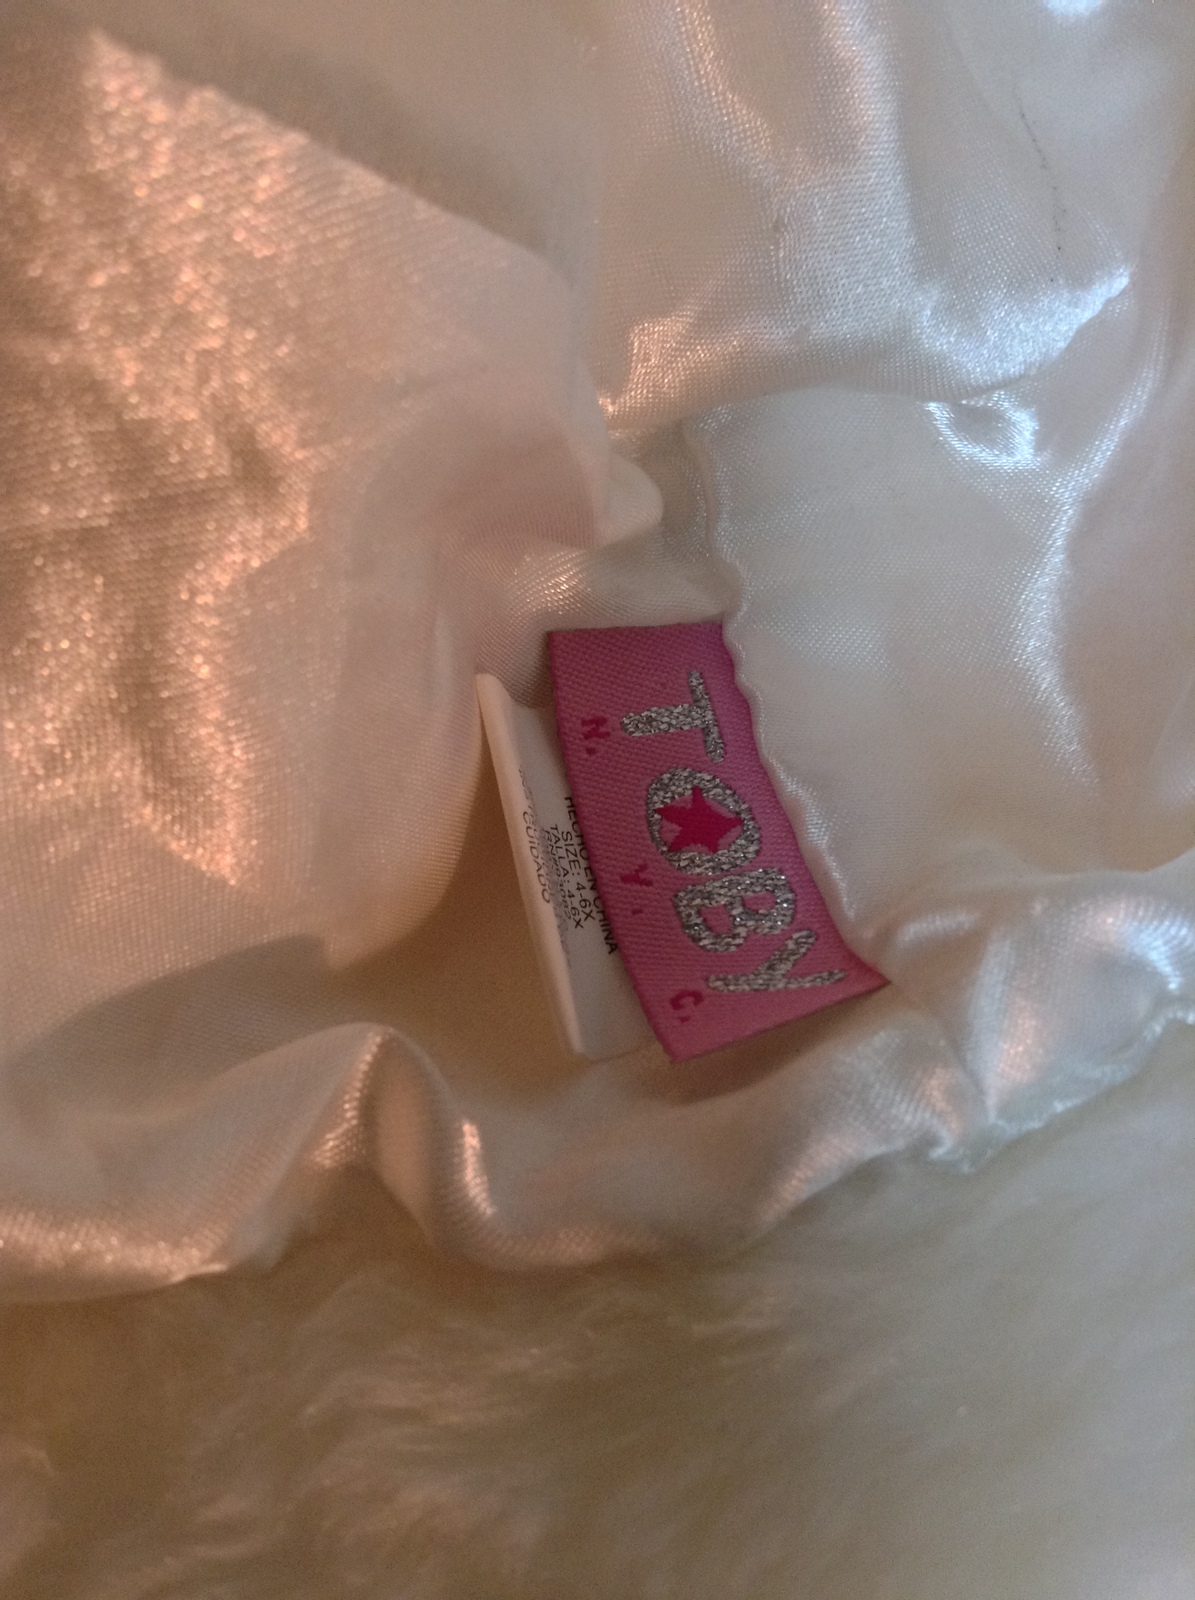 Girl's Toby NY Faux Fur White Hat Pink Bow NWOT Size 4-6